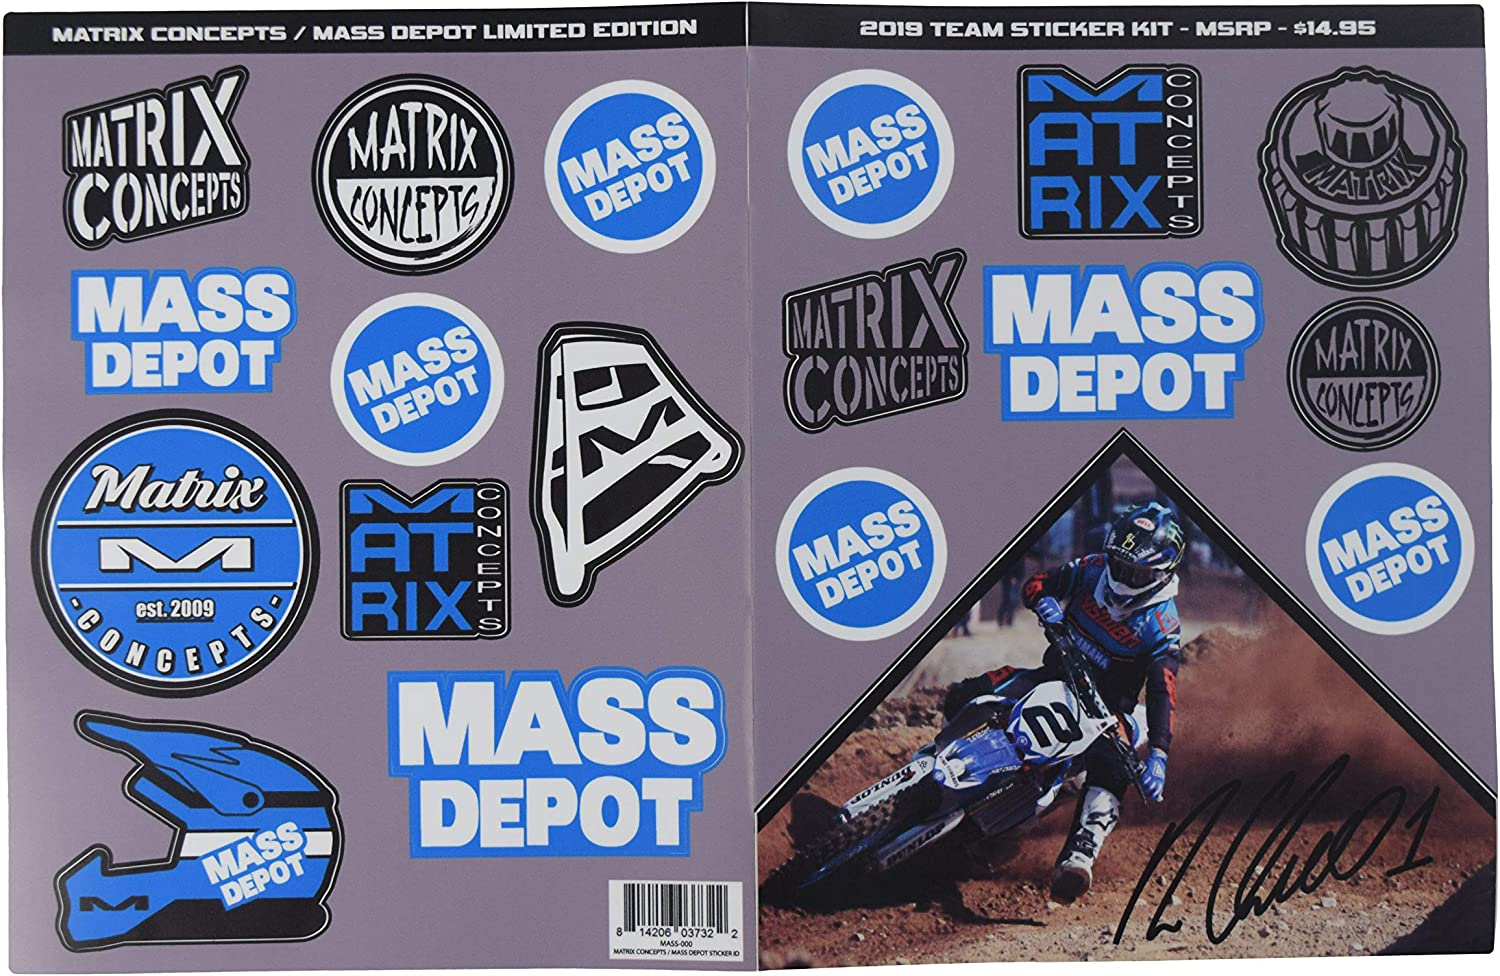 Matrix Concepts M64 Motocross Elite Dirt Bike MX Stand w Limited Edition 25 Piece Sticker Kit Black